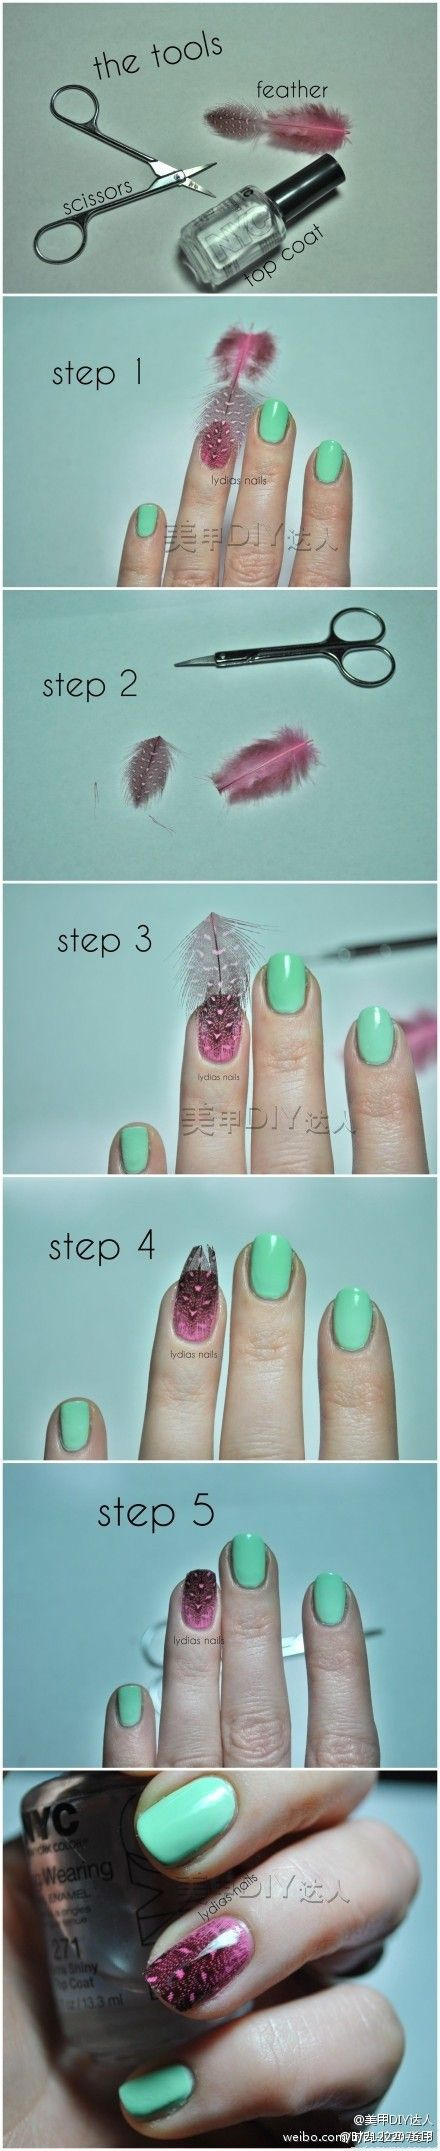 best my style nails images on pinterest make up hairstyles